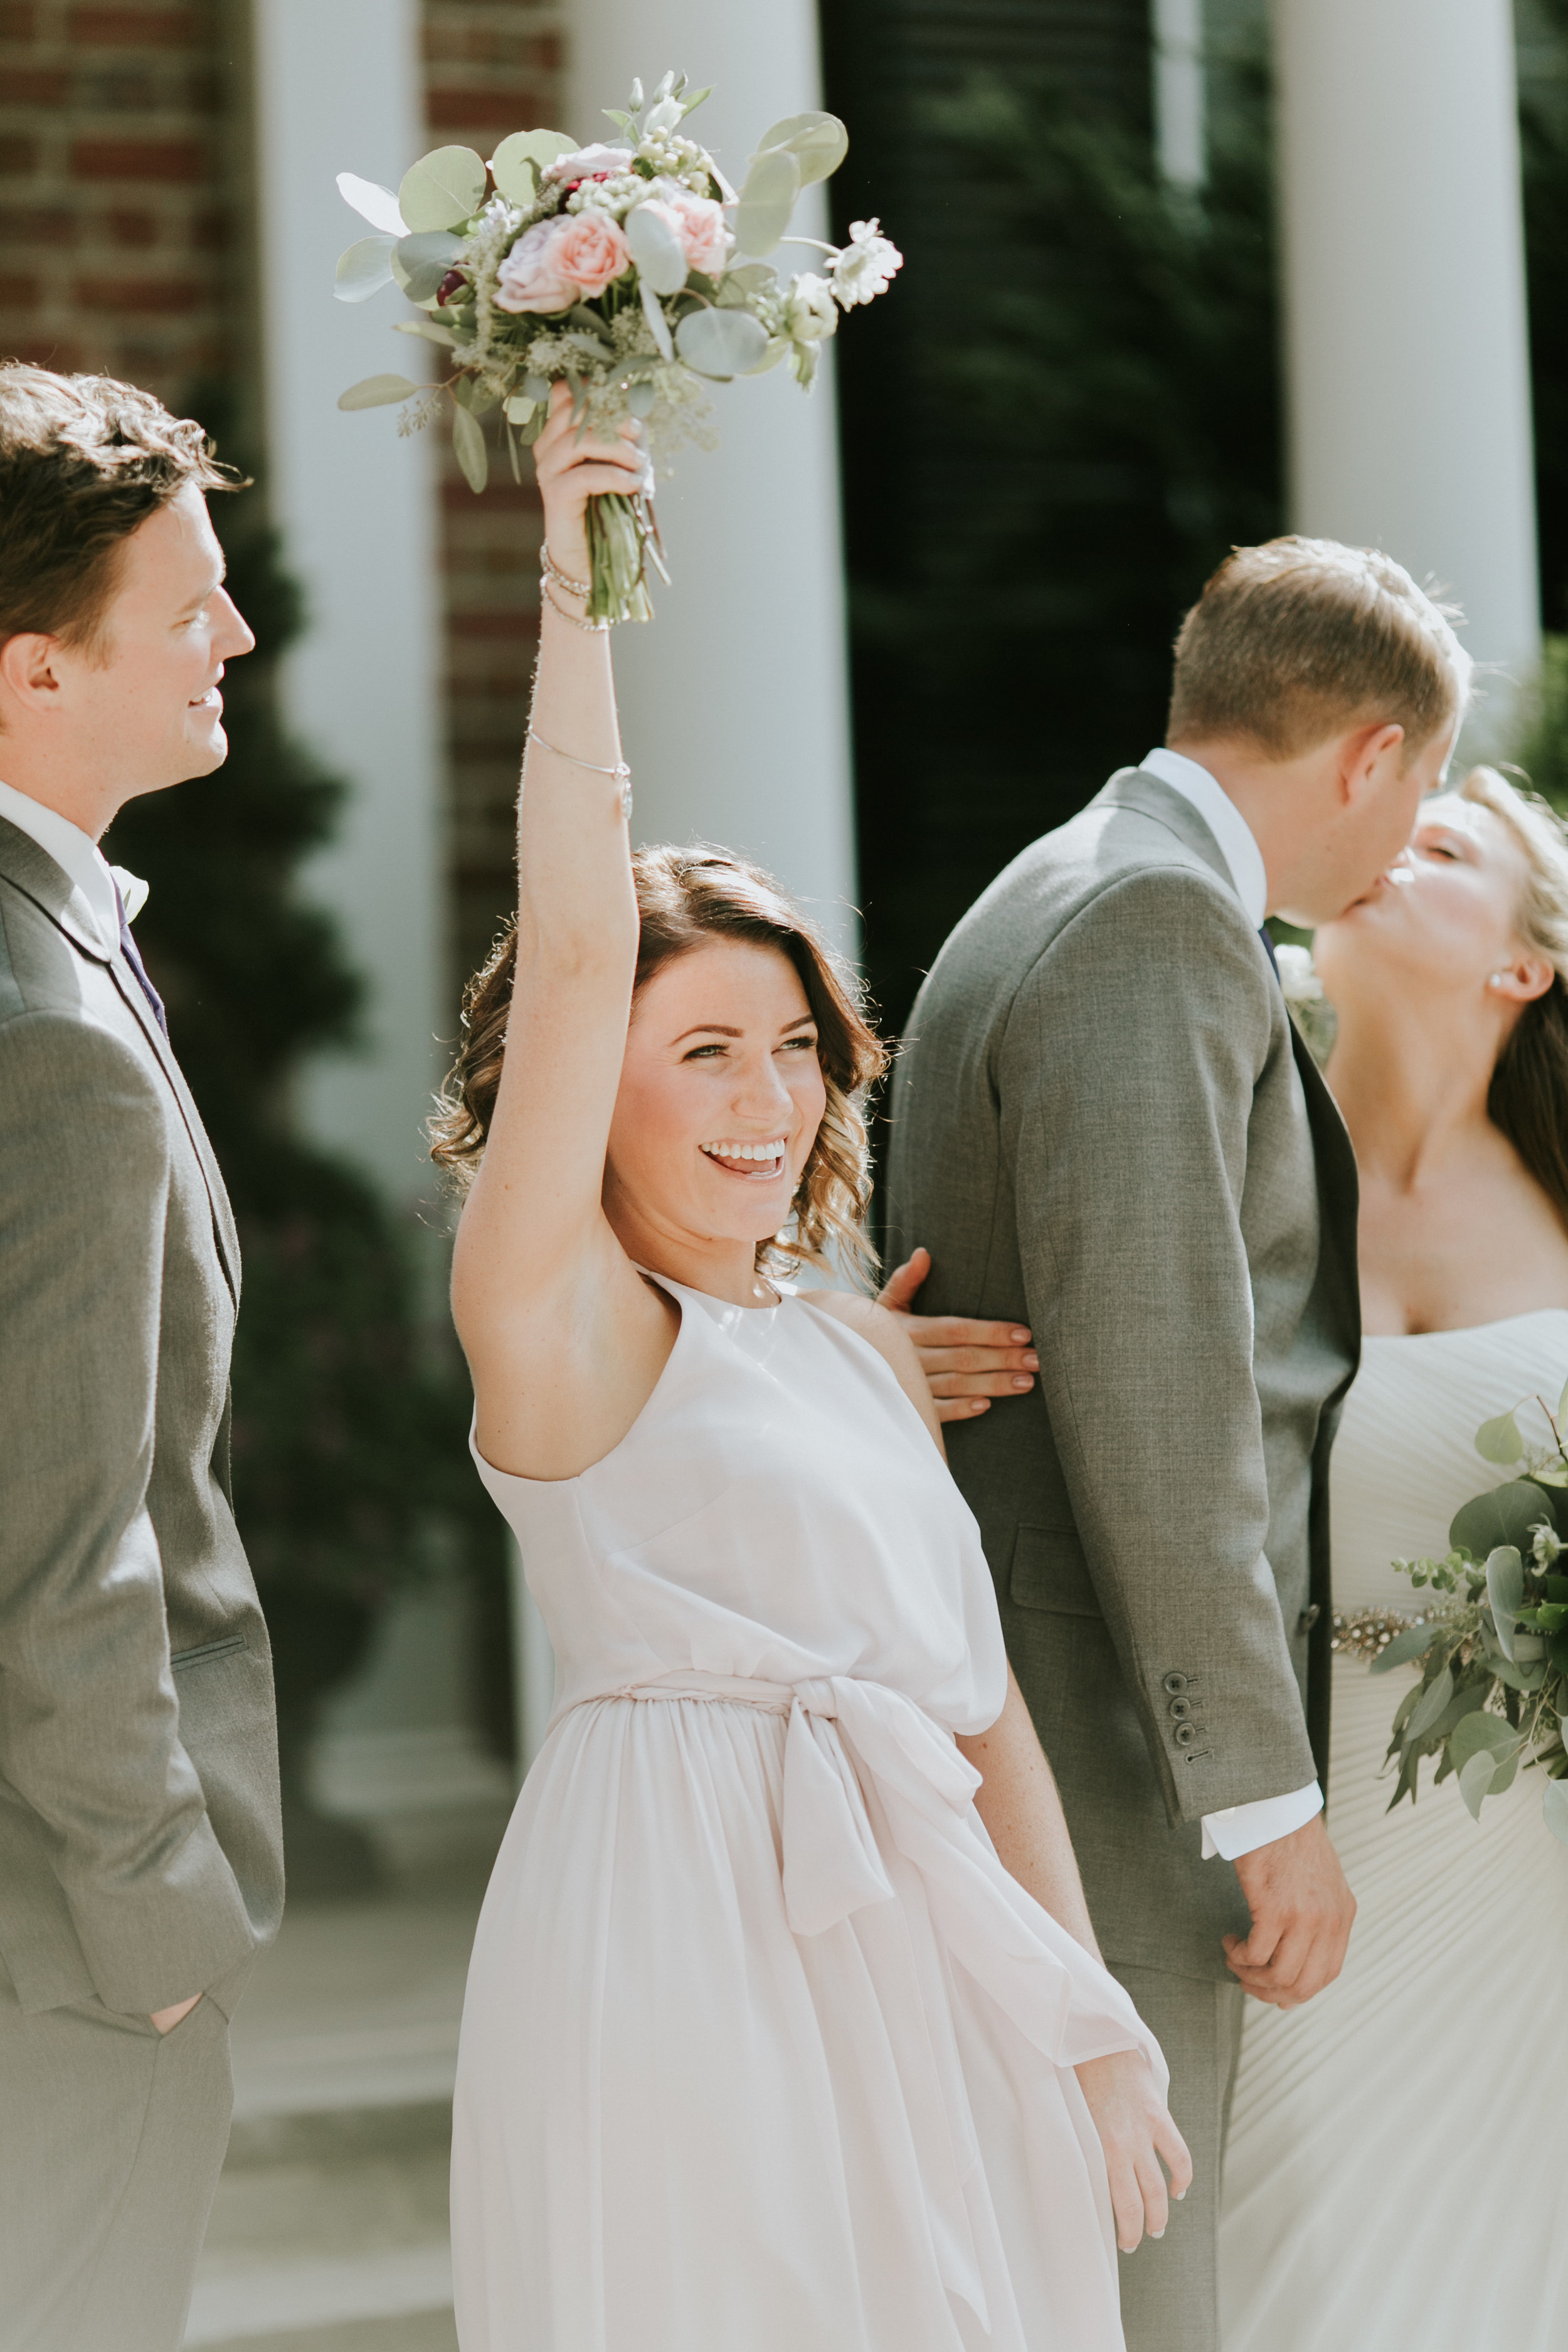 Rustic Oyster Themed Eastern Shore Maryland Outdoor Wedding by East Made Event Company Wedding Planner and Bekah Kay Creative317.jpg